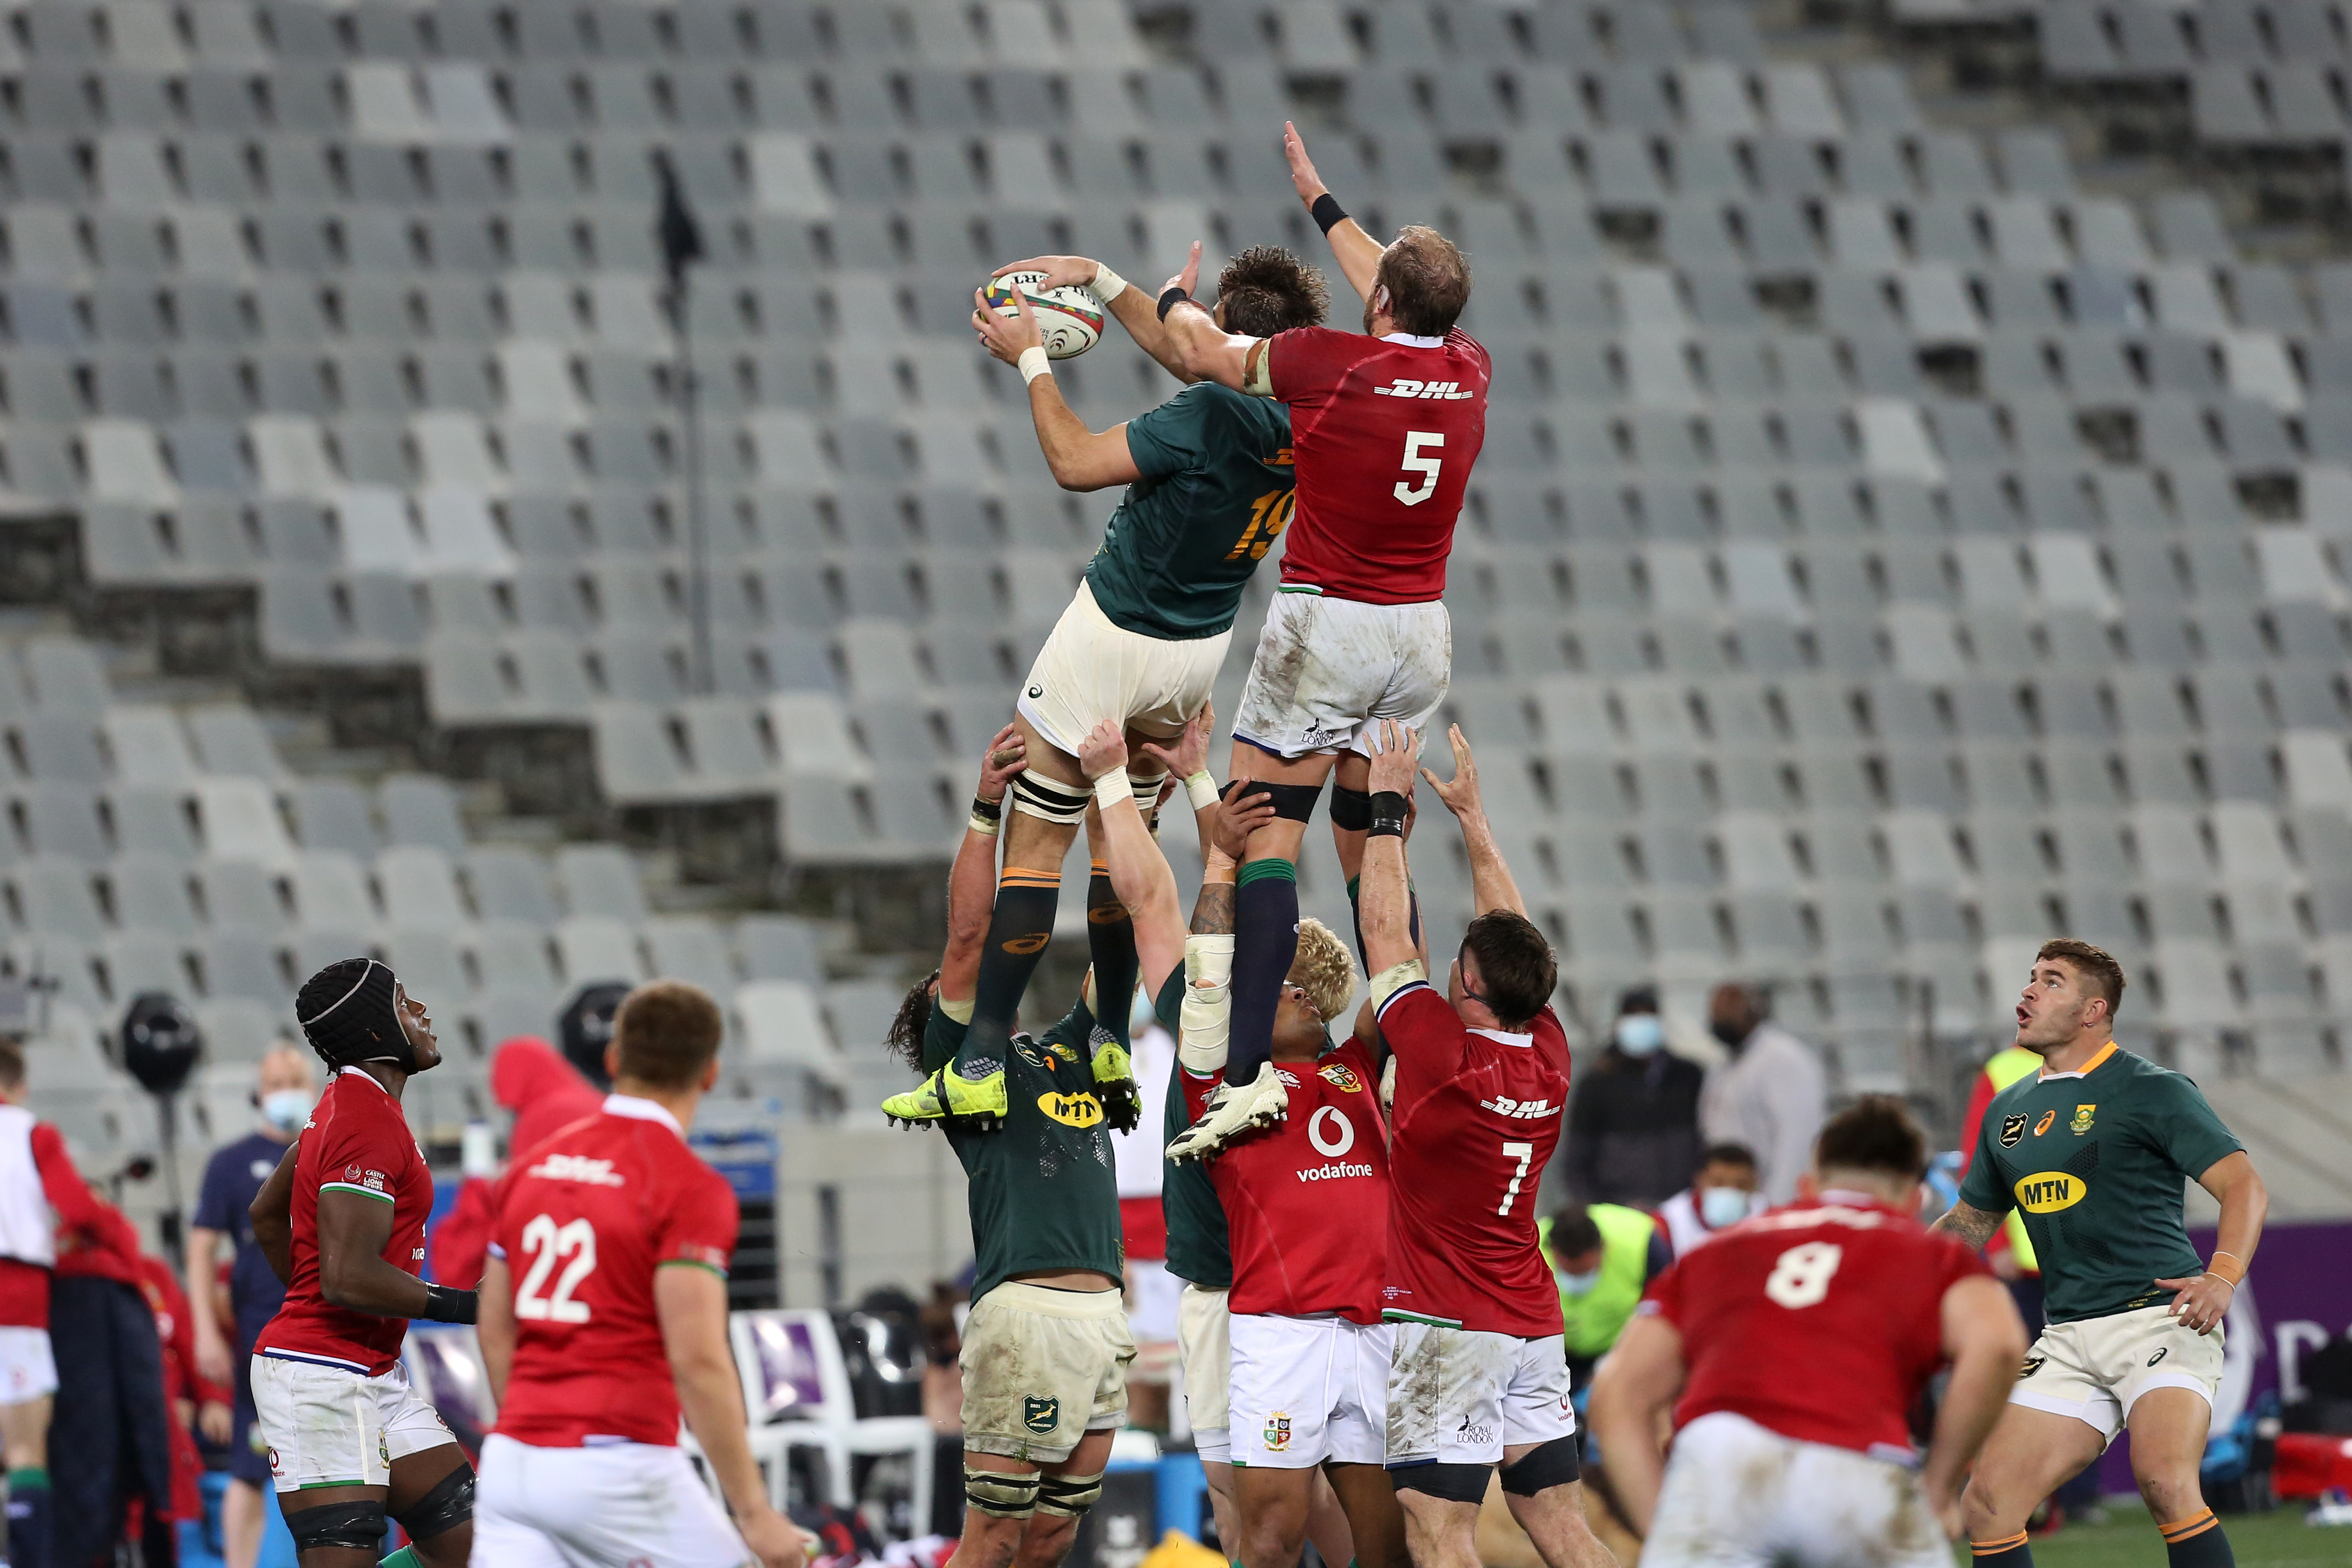 Analysed: South Africa's set-piece dominance - Rugby World